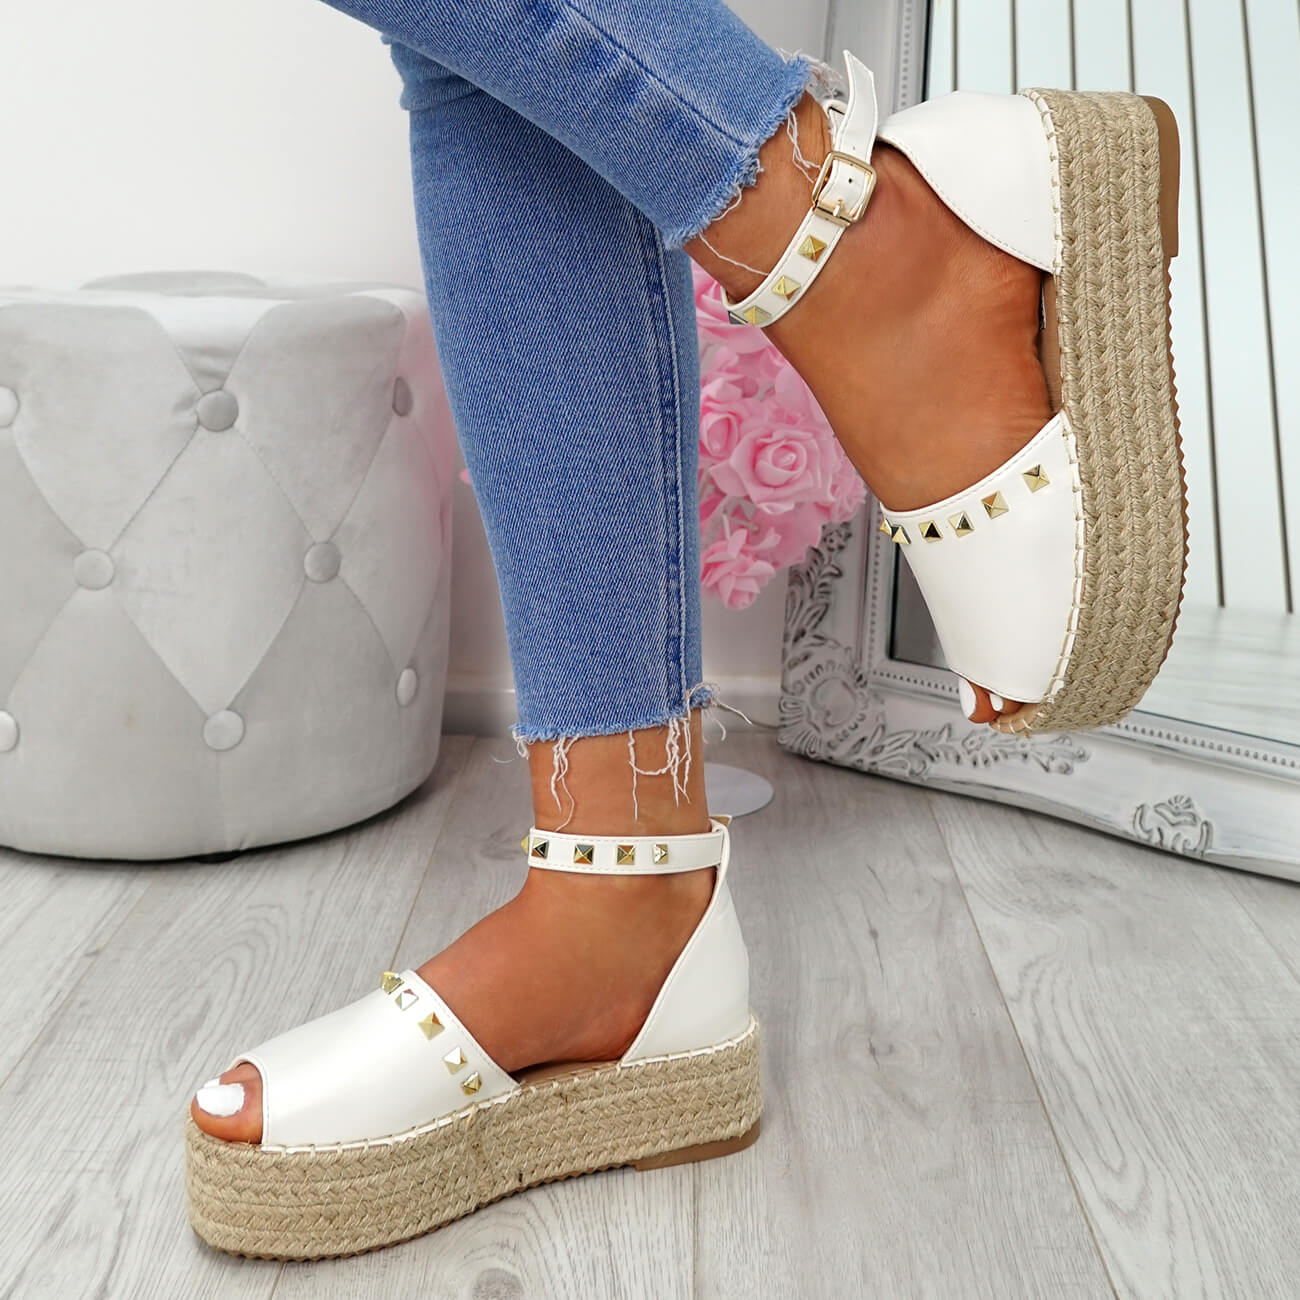 WOMENS-LADIES-ROCK-STUDS-ESPADRILLE-FLATFORM-PLATFORM-SANDALS-CASUAL-SHOES-SIZE thumbnail 22